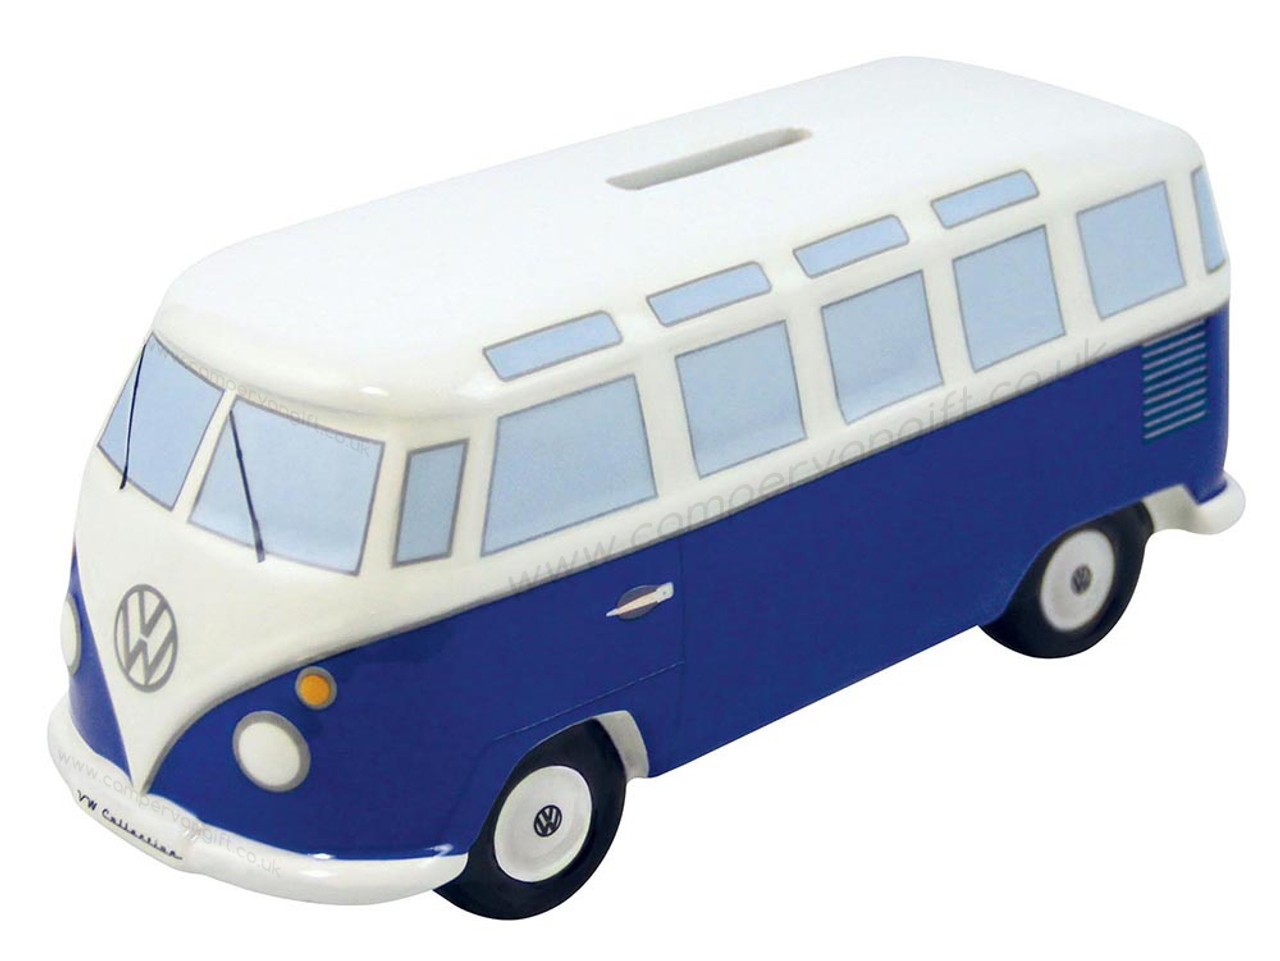 Vw t1 classic blue campervan money box save up for a rainy day vw t1 classic blue campervan money box thecheapjerseys Choice Image